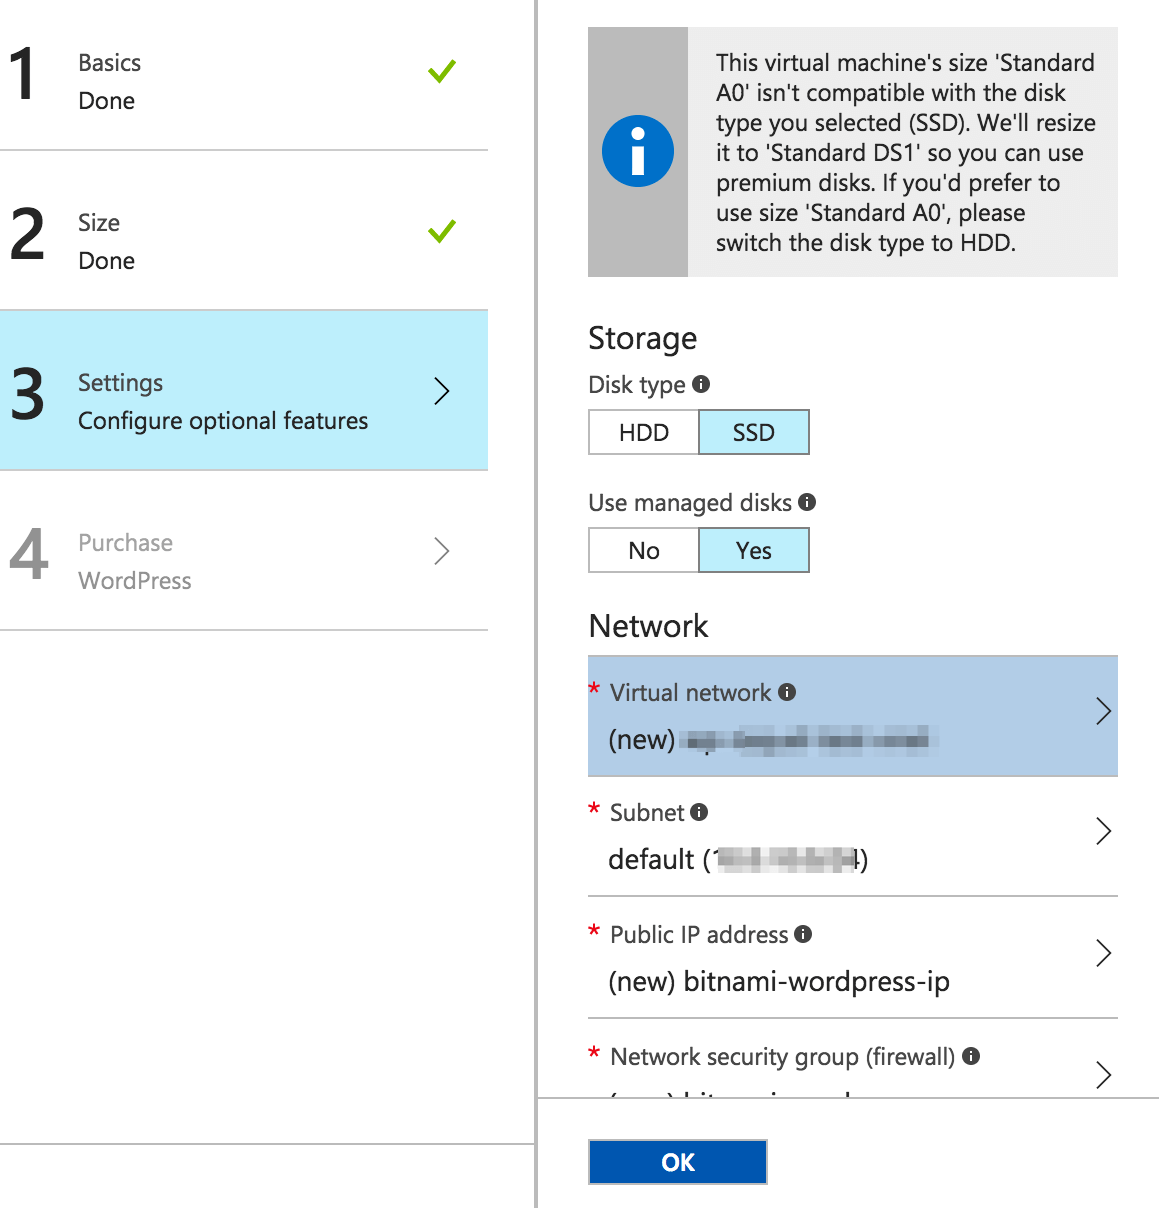 Configure the virtual network for an Azure virtual machine